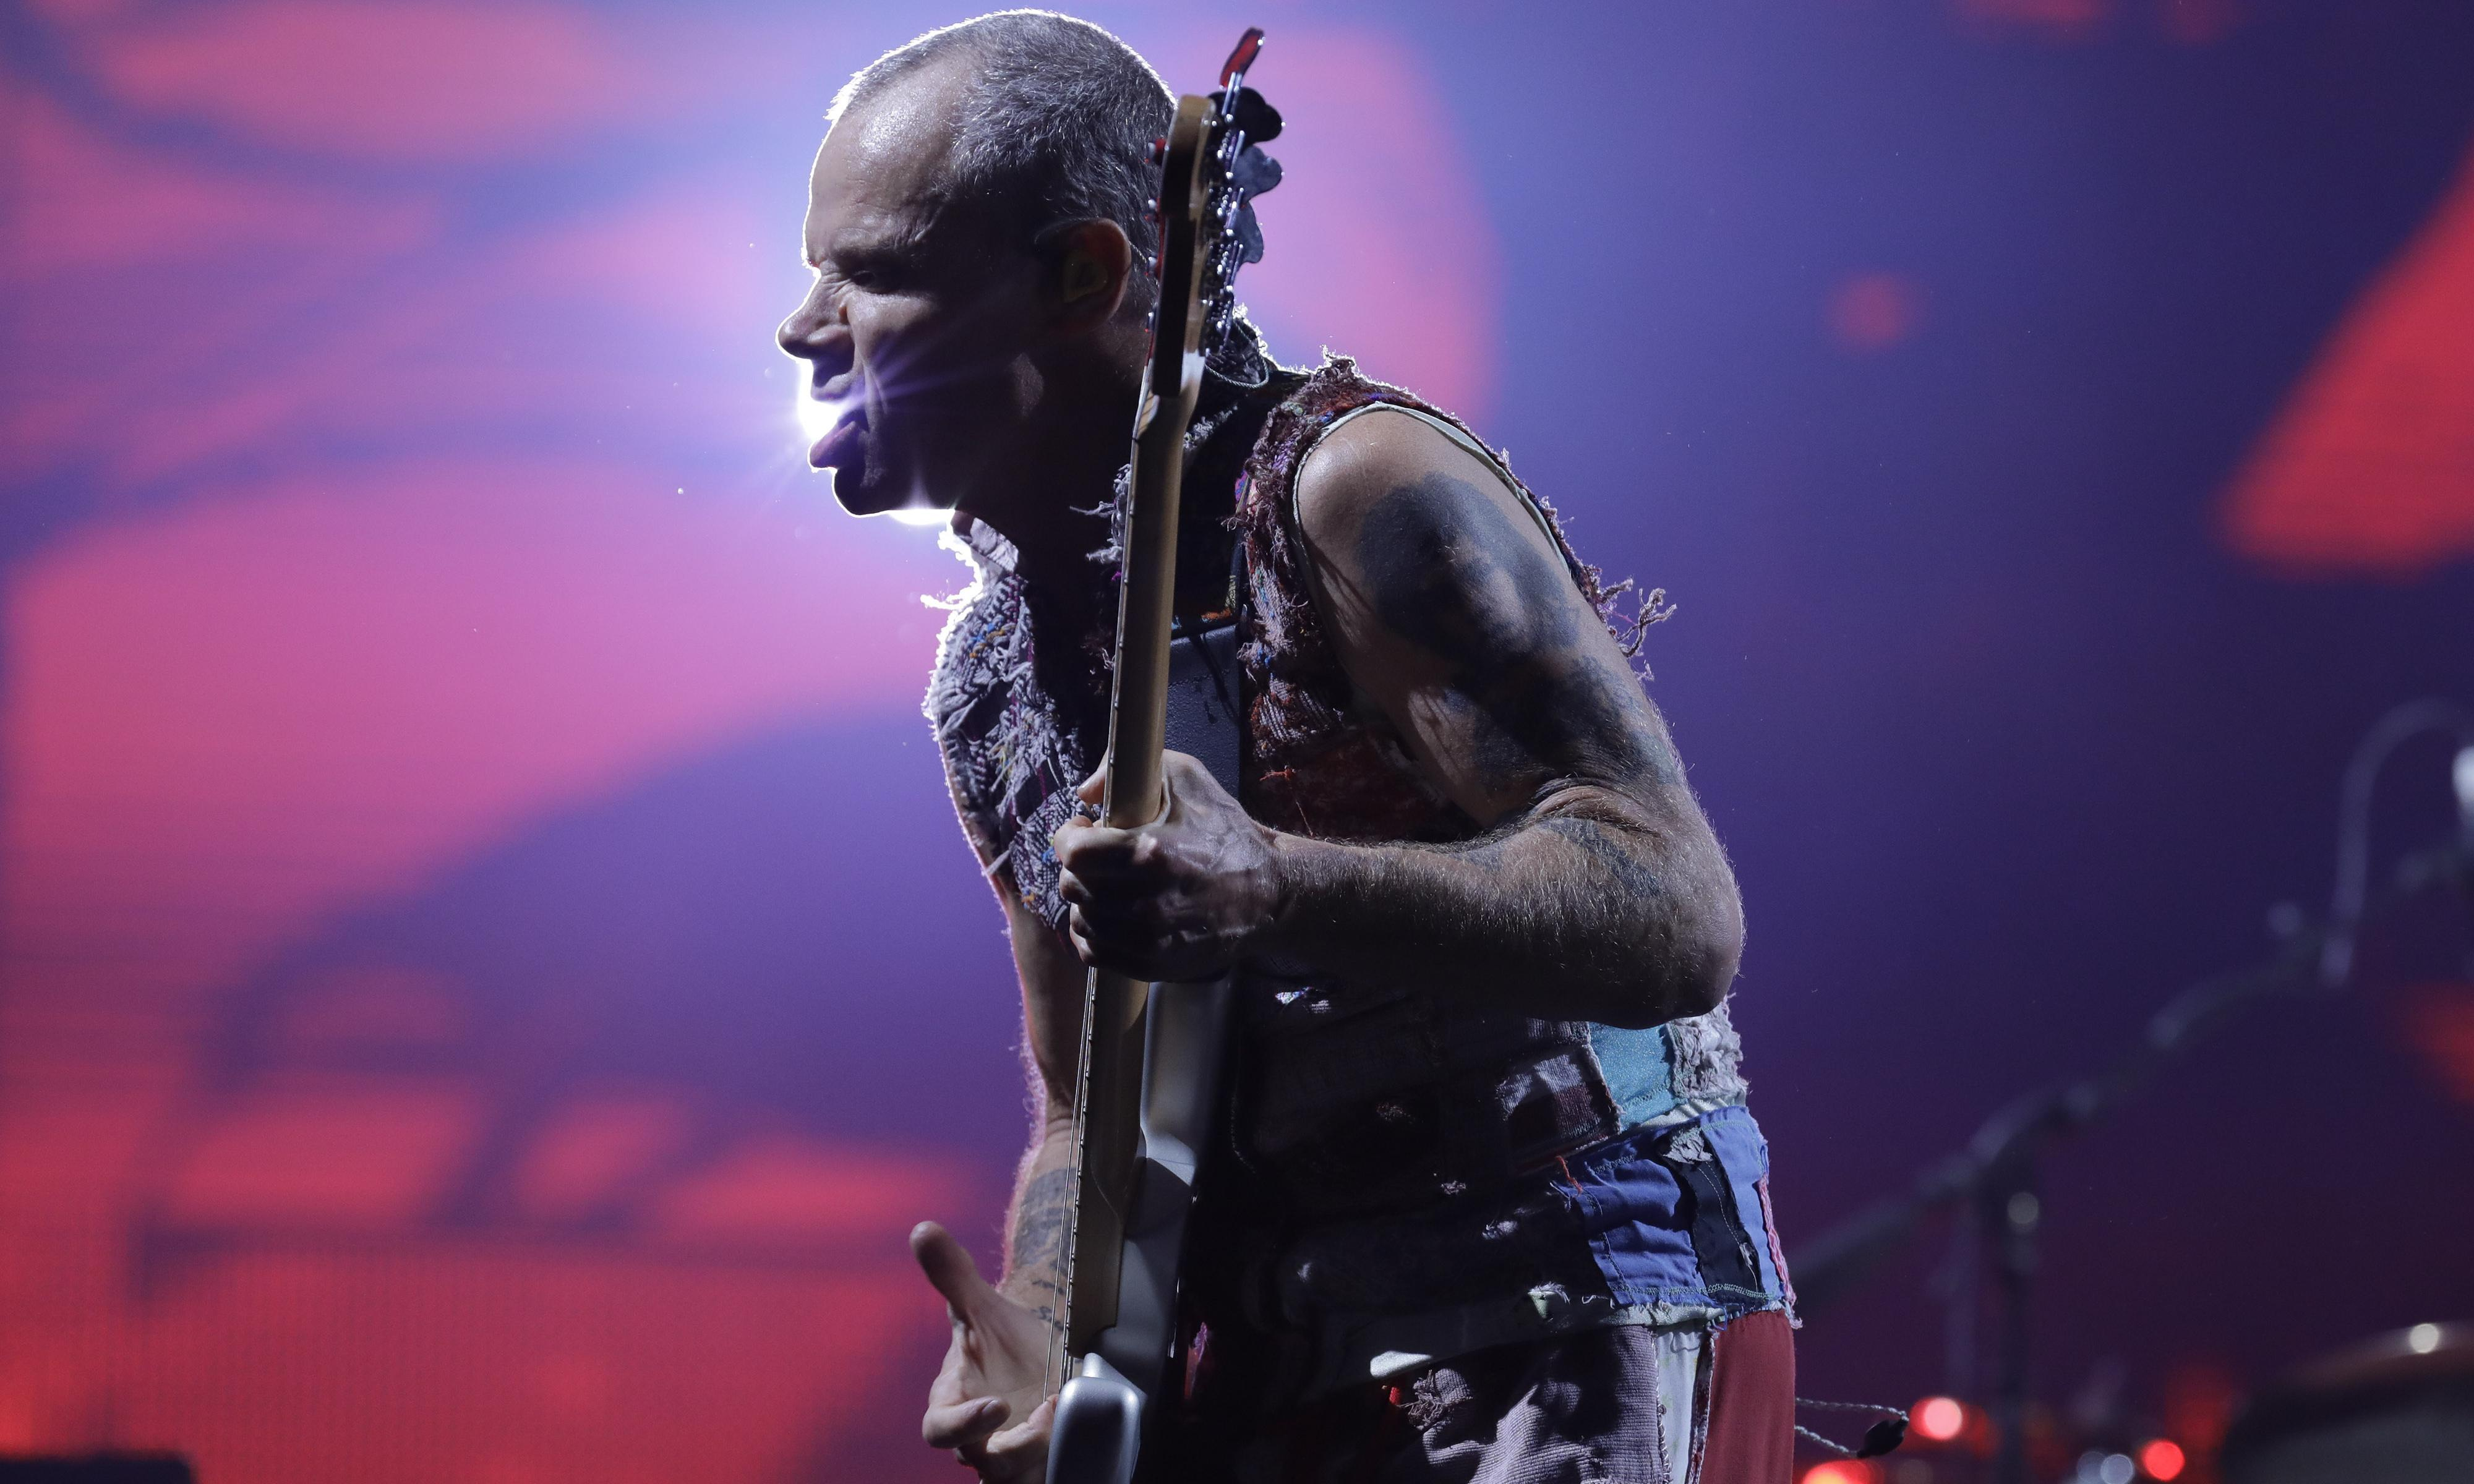 Flea on life before the Chili Peppers: 'I grew up running around naked'